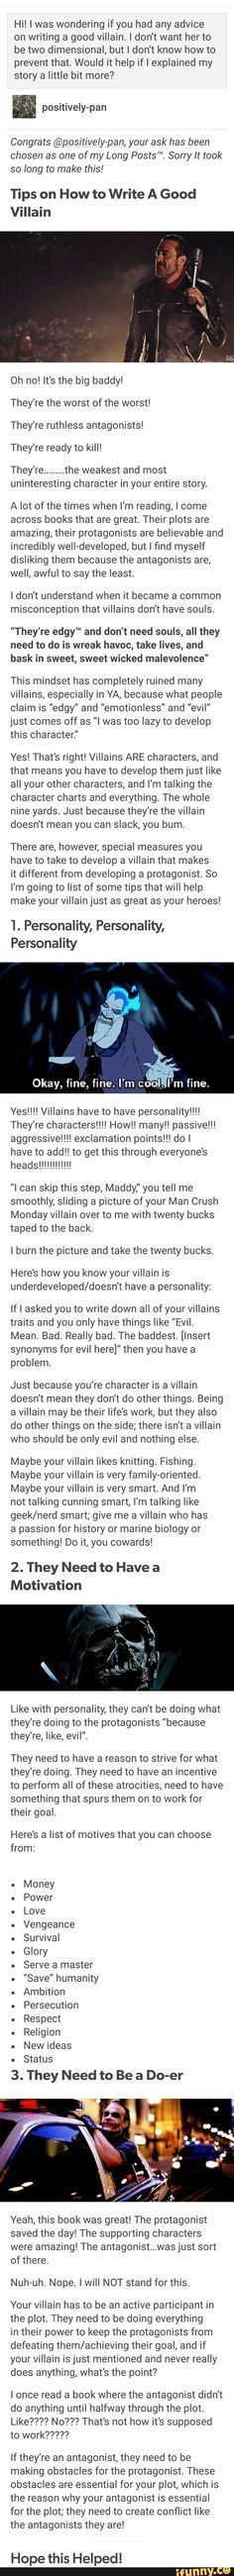 Excellent Writing Tip on developing villains - my additional advise is to give them a soft heart inside the hardened one because they could have been a completely normal loving person that some life changing experience turned them to become the way they are. This is where you could try to make them good again. Just a thought.